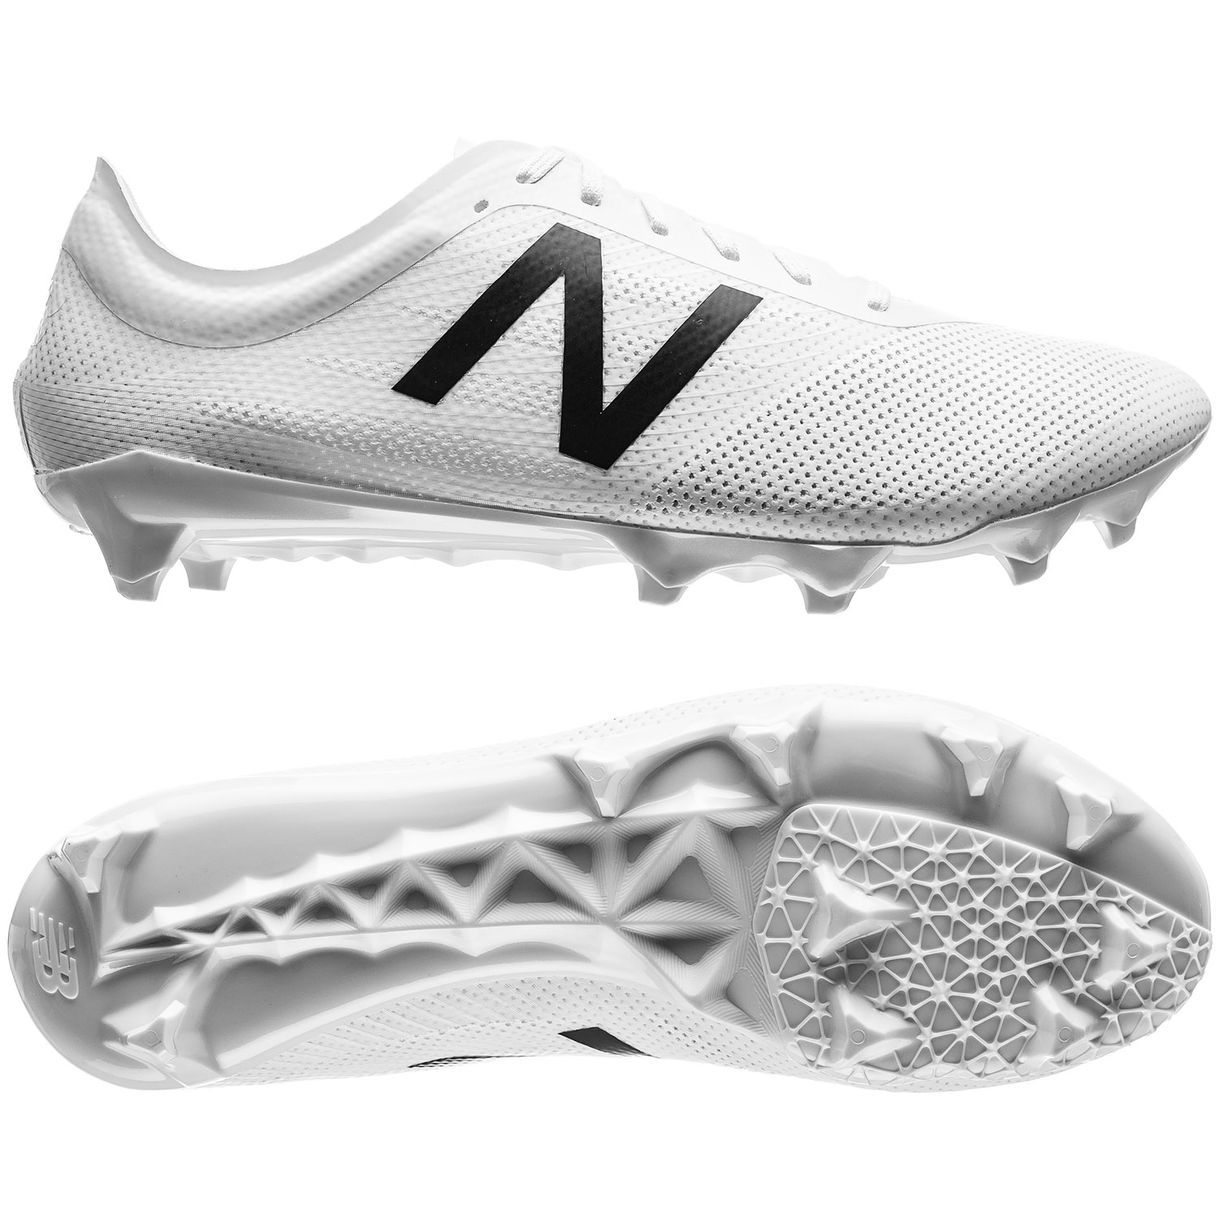 ... Click to enlarge image  new balance furon-2 0 pro fg blackout black white f.jpg ... dde1f633a143